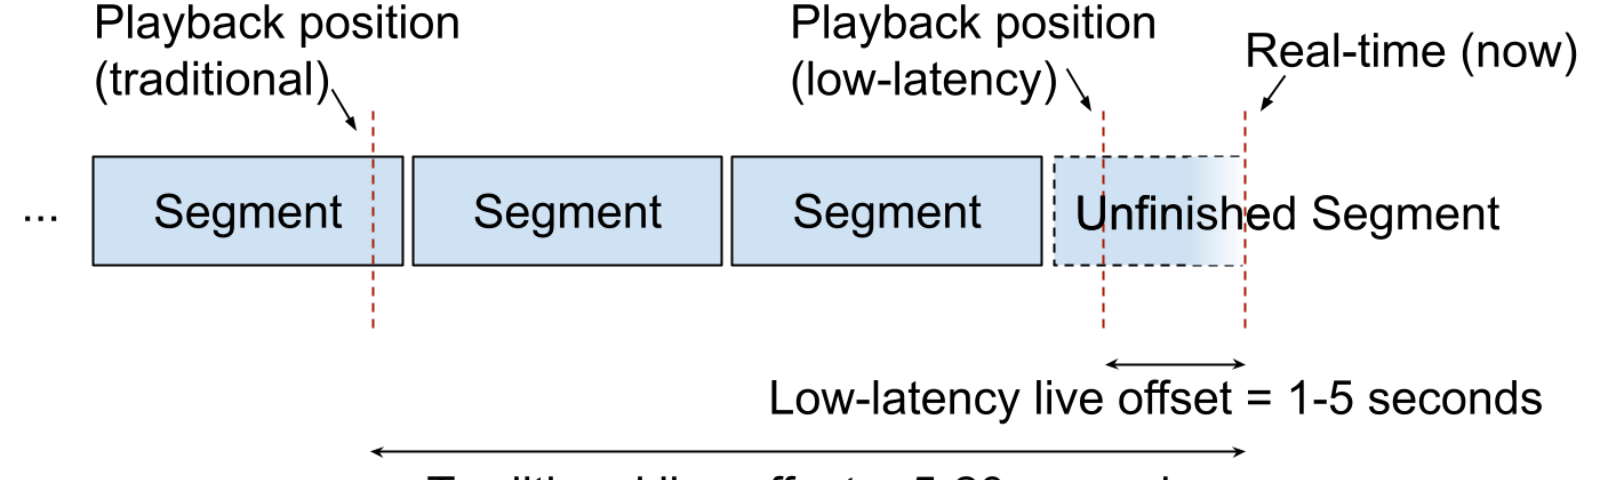 Diagram showing segments in a live stream with a low-latency playback position in the yet unfinished segment at the live edge